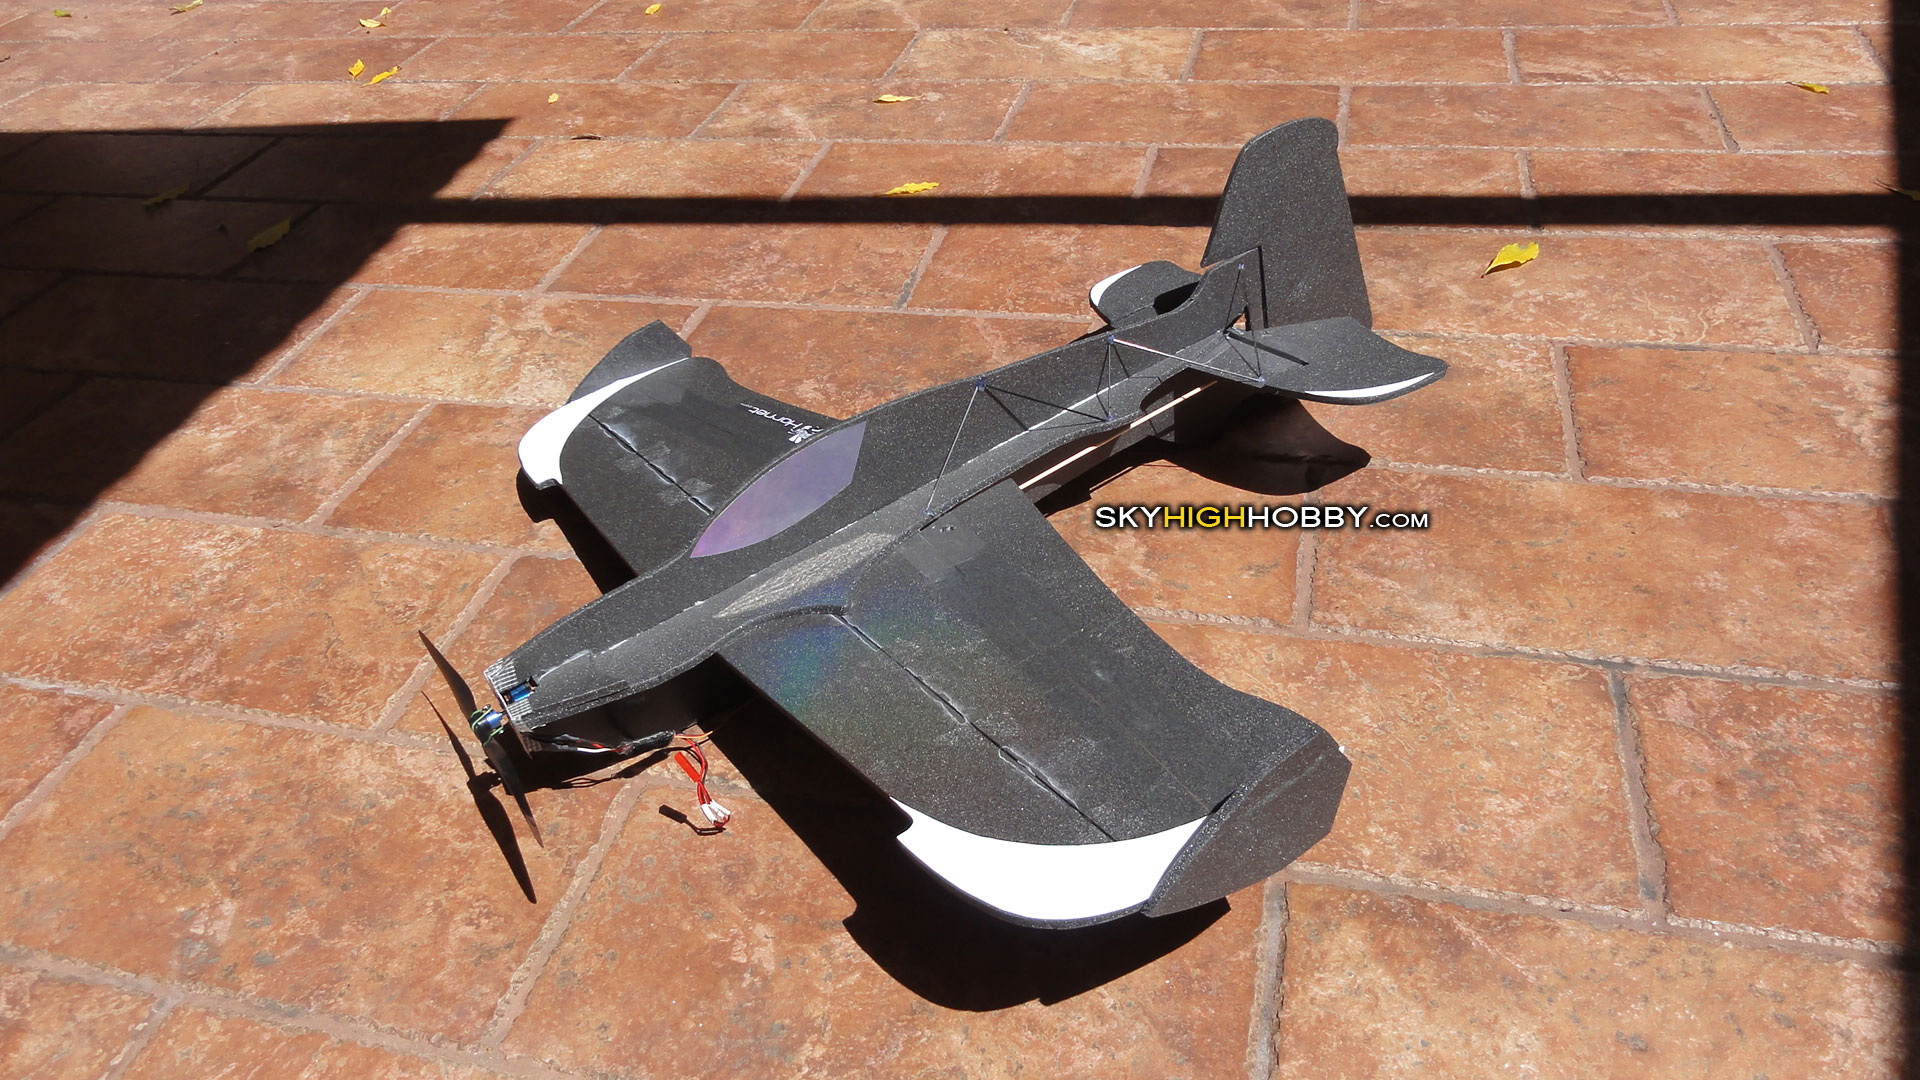 3d-hornet-electric-plane-futaba-flying-giant-foamie-depron-homemade-uzi-razorback-skua